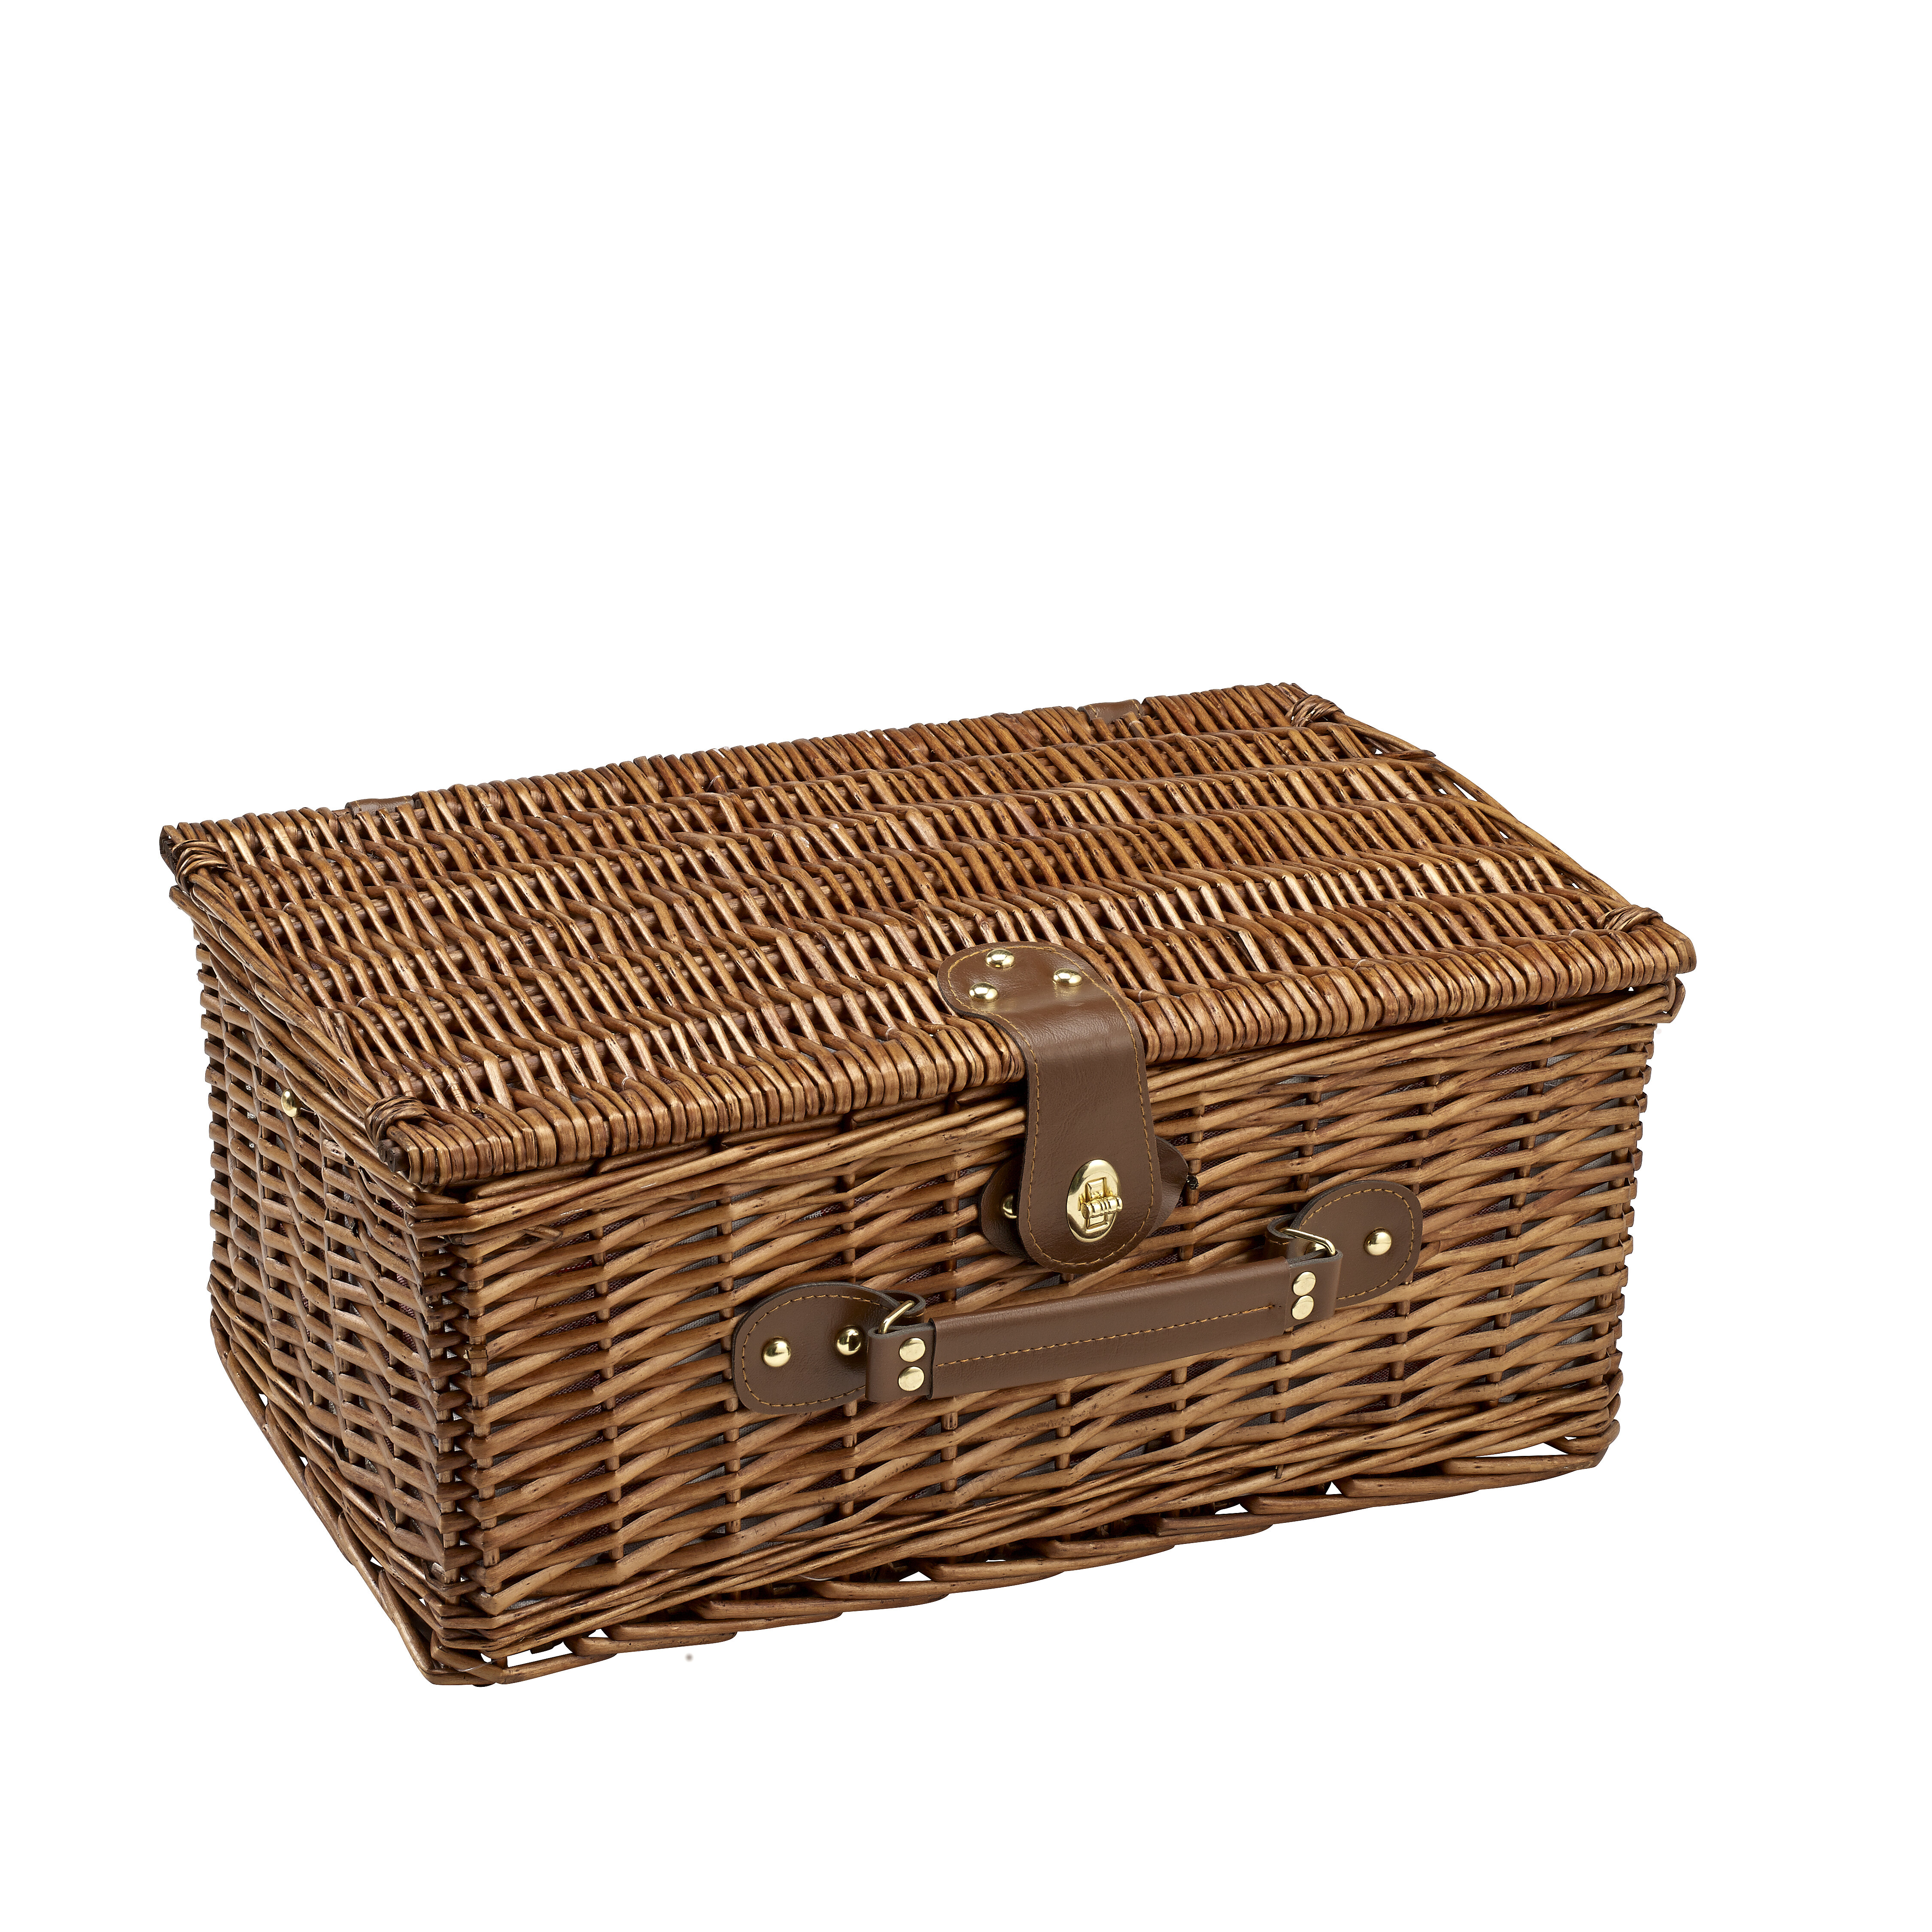 Set Of 2 Picnic Baskets With Lid Suitcase Style With Brown Fuax Leather Handle //Antique Style Lock